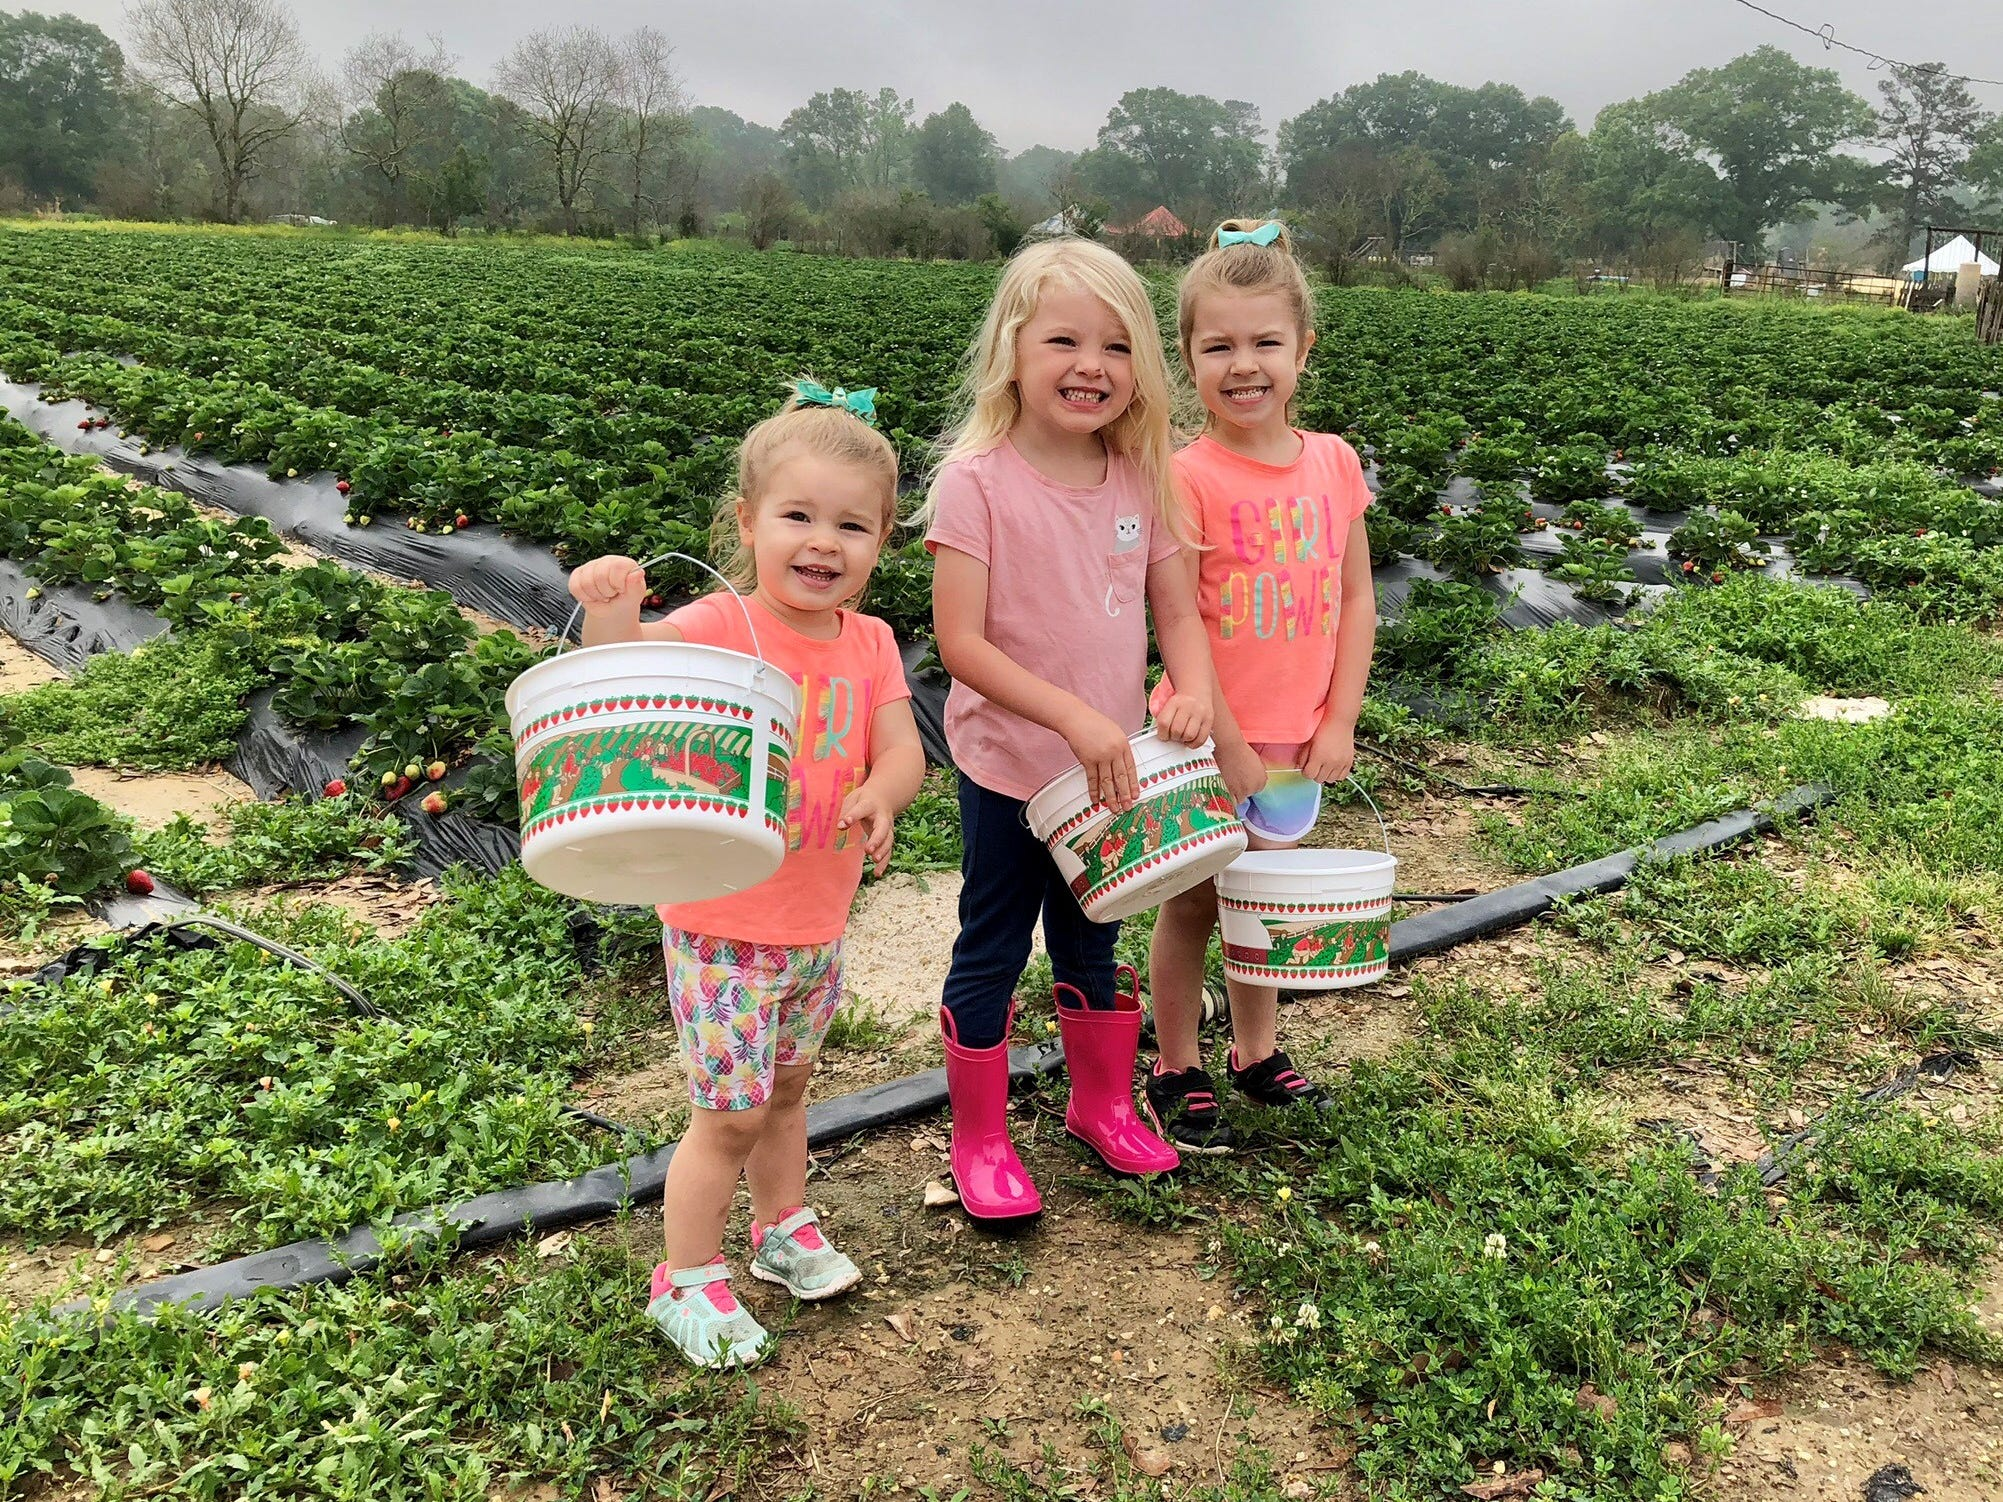 Cousins Marie Guidry, Claire Ivy and Avery Guidry prepare to pick strawberries April 6 at Mrs. Heather's Strawberry Farm in Albany, Louisiana.